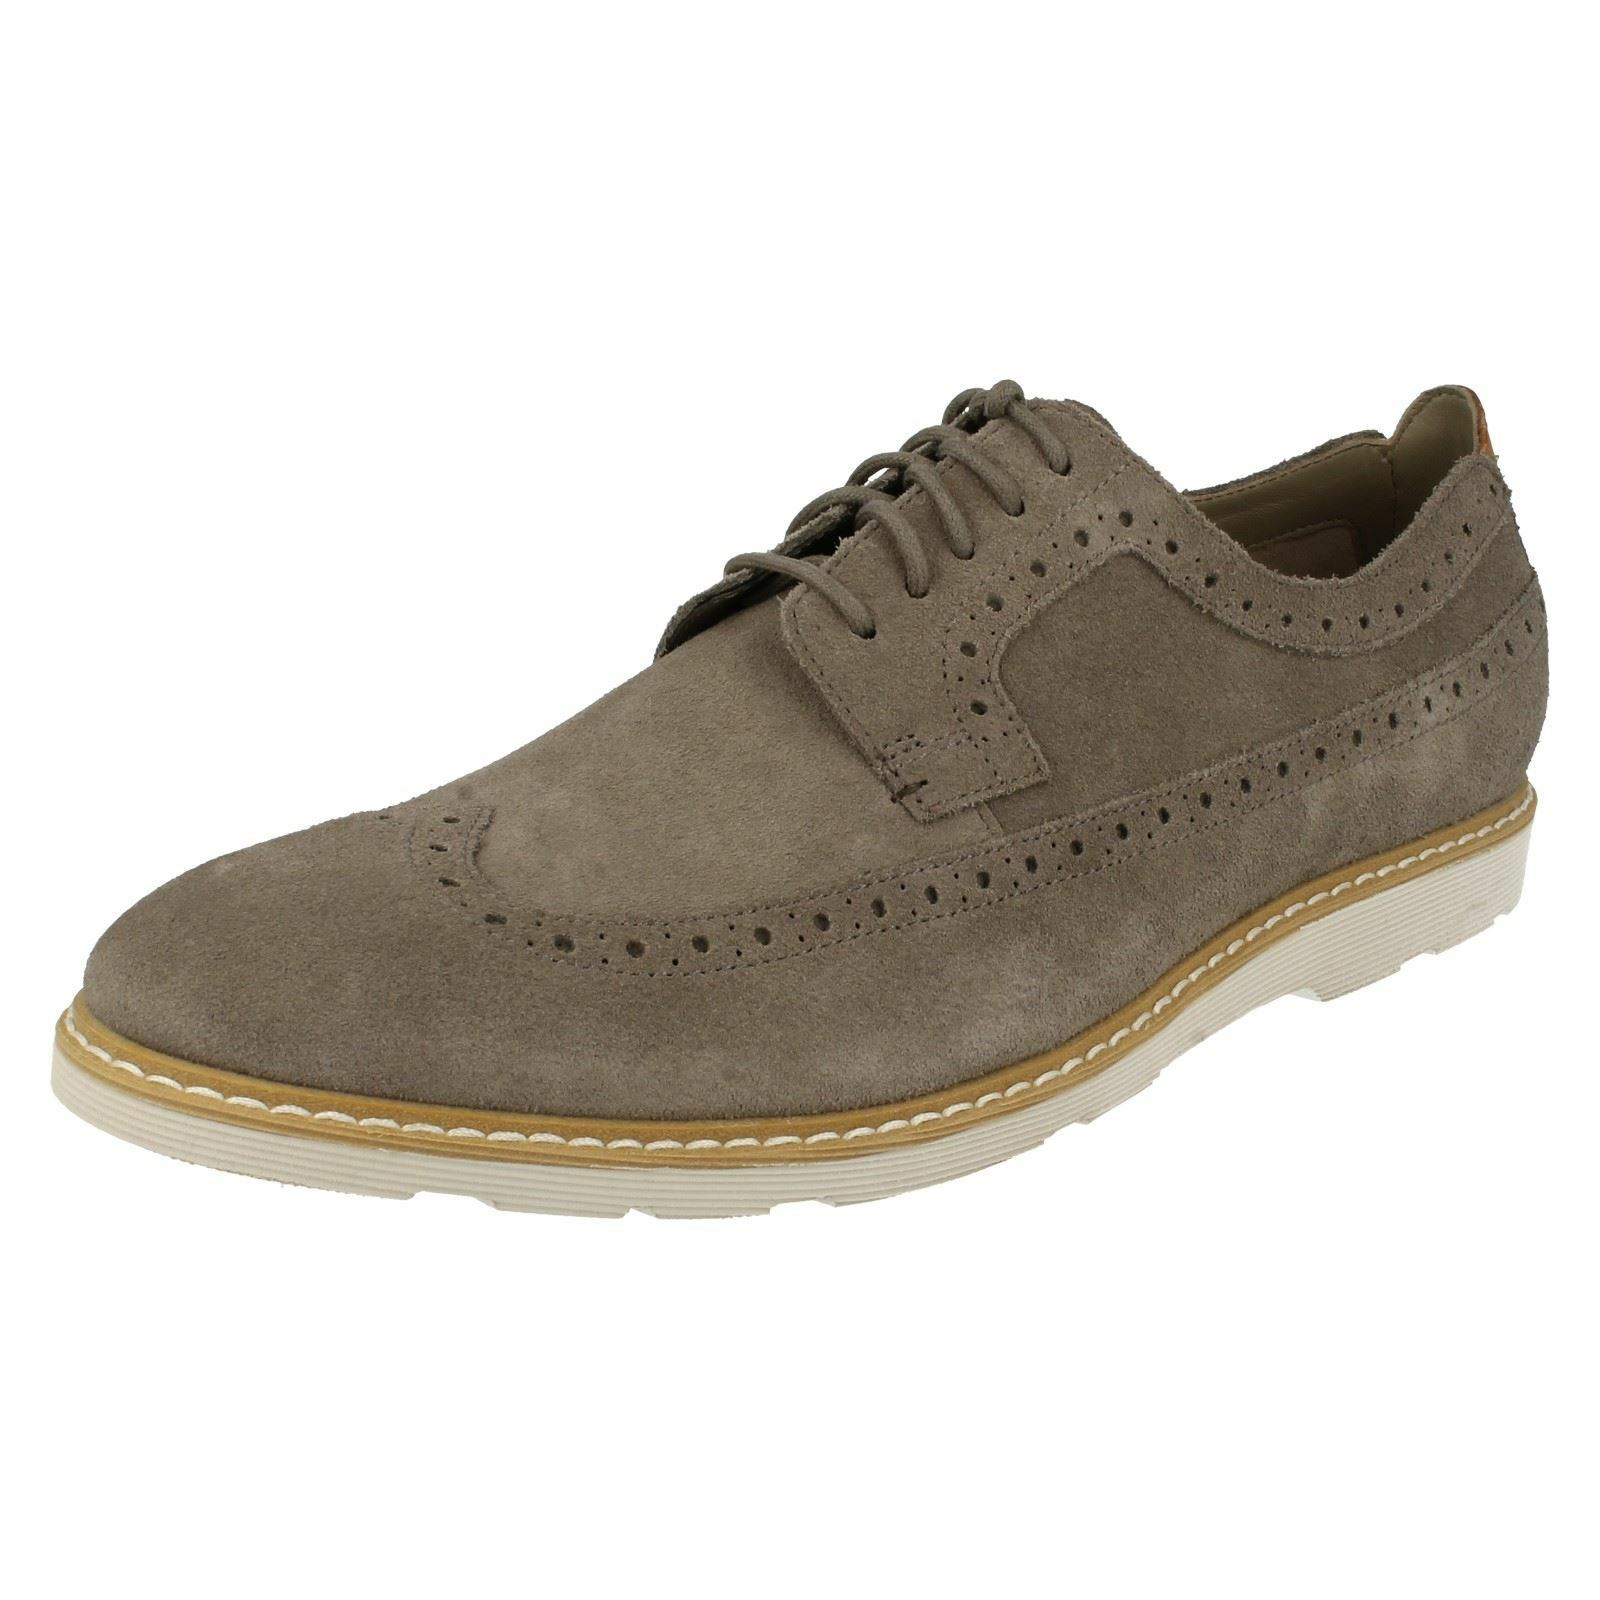 Mens Clarks Smart Casual Brogues - Gambeson Dress      Tadellos